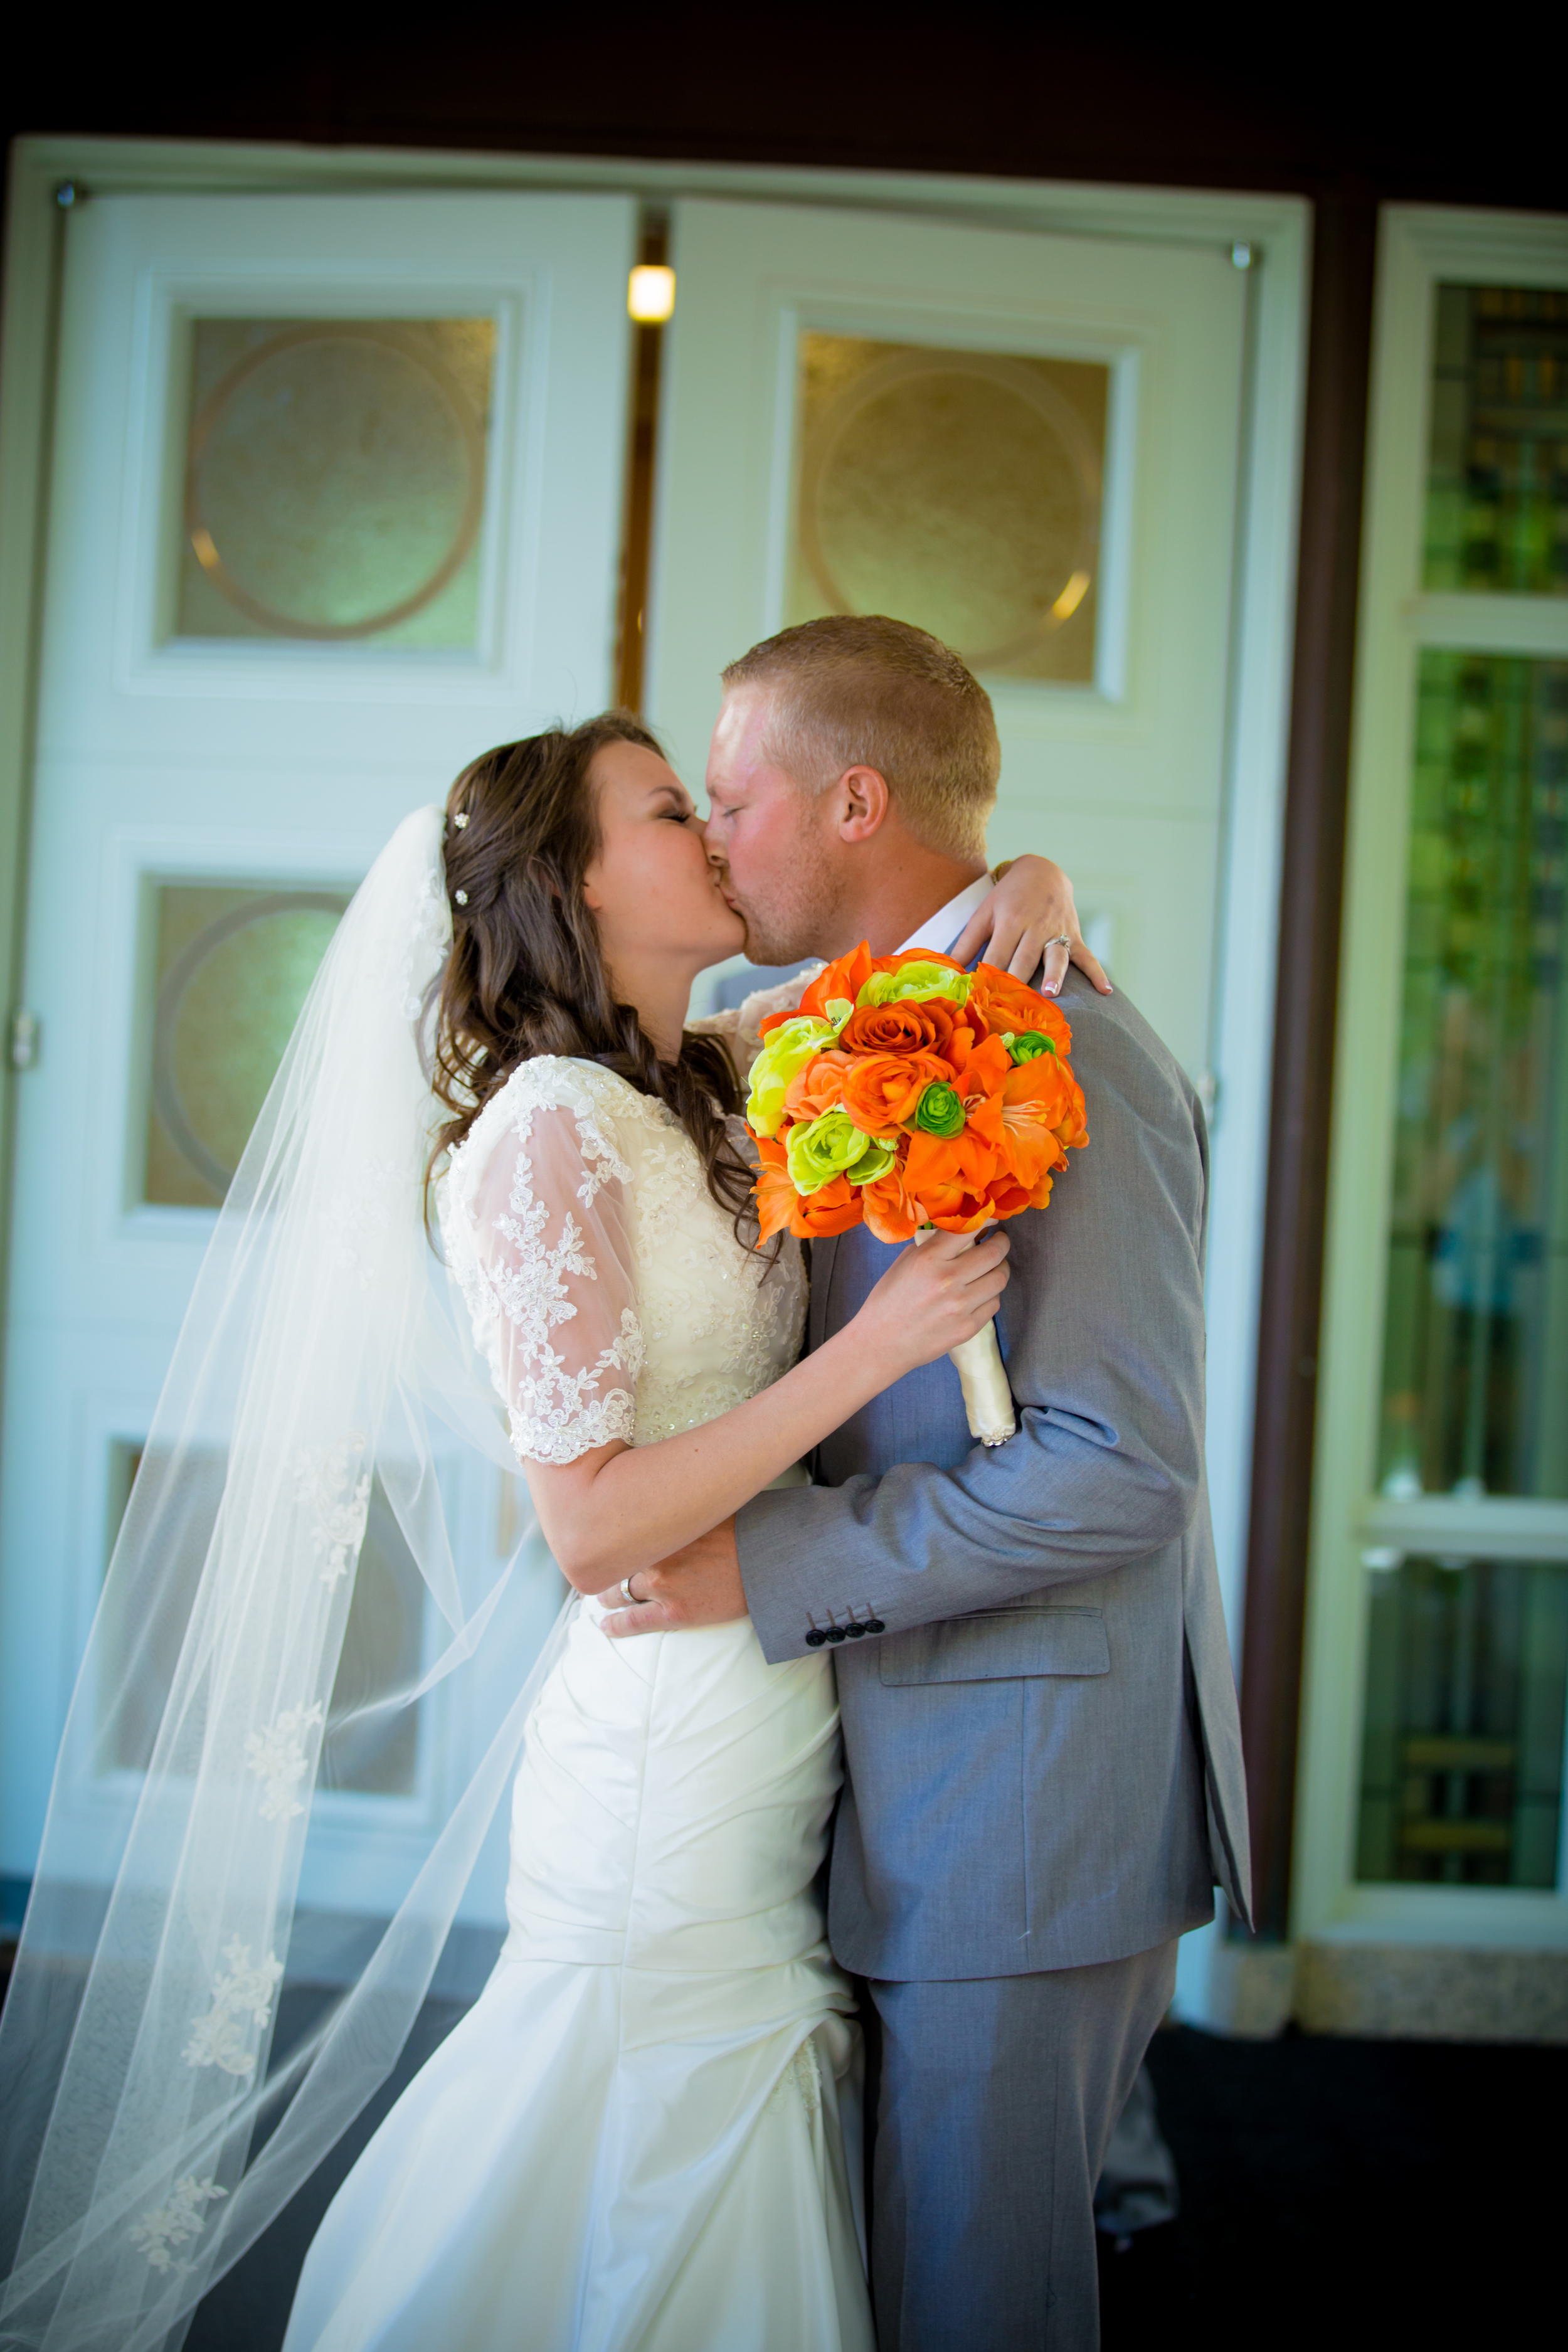 Coming out of the temple and giving the first kiss as a married and sealed couple.